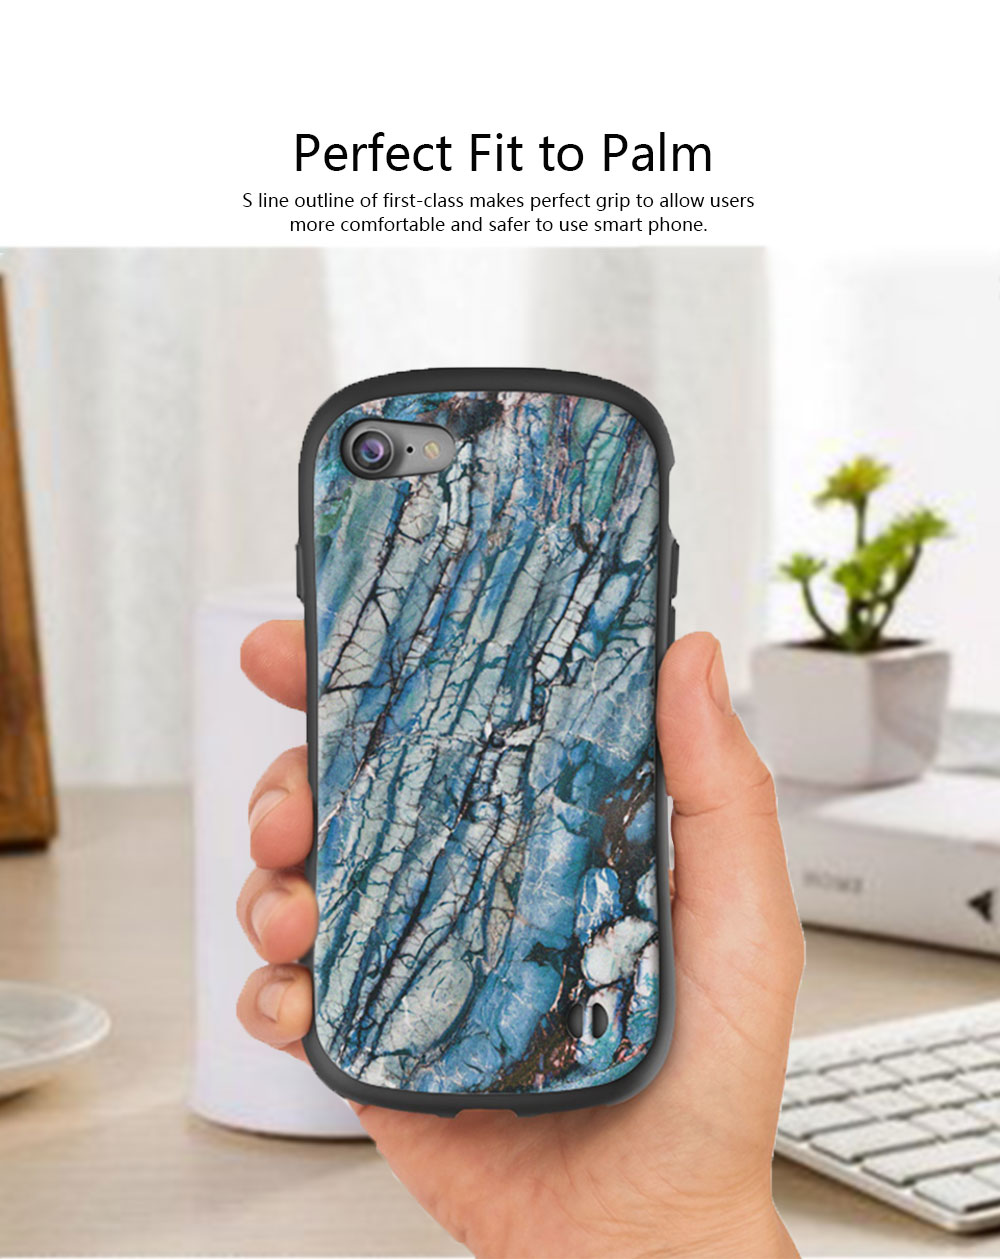 Creativity Silicone All-inclusive Fall Prevention Sling Mobile Phone Shell for iPhone 8 Plus & 7P & 6S 4